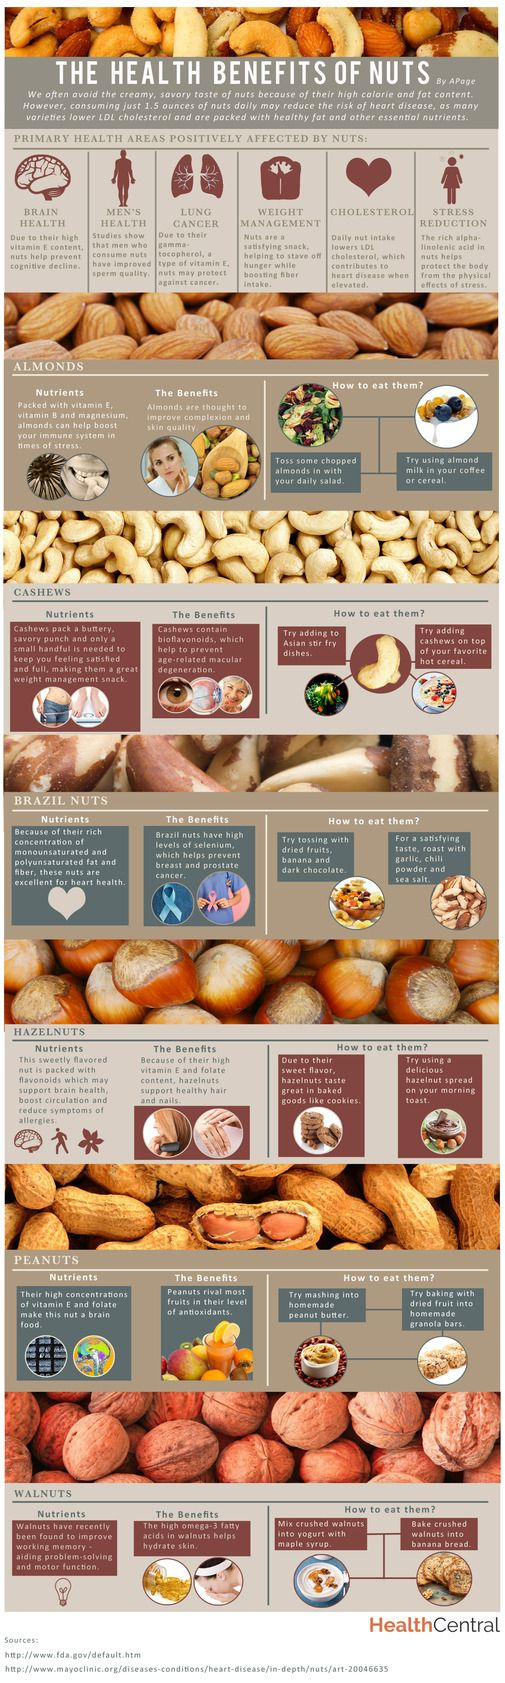 Check out our helpful #infographic on the benefits of eating #nuts! Nuts are an excellent source of protein, essential fats and fiber. Learn more by reading our article:  http://www.healthcentral.com/diet-exercise/c/458275/168032/benefits-infographic?ap=2012